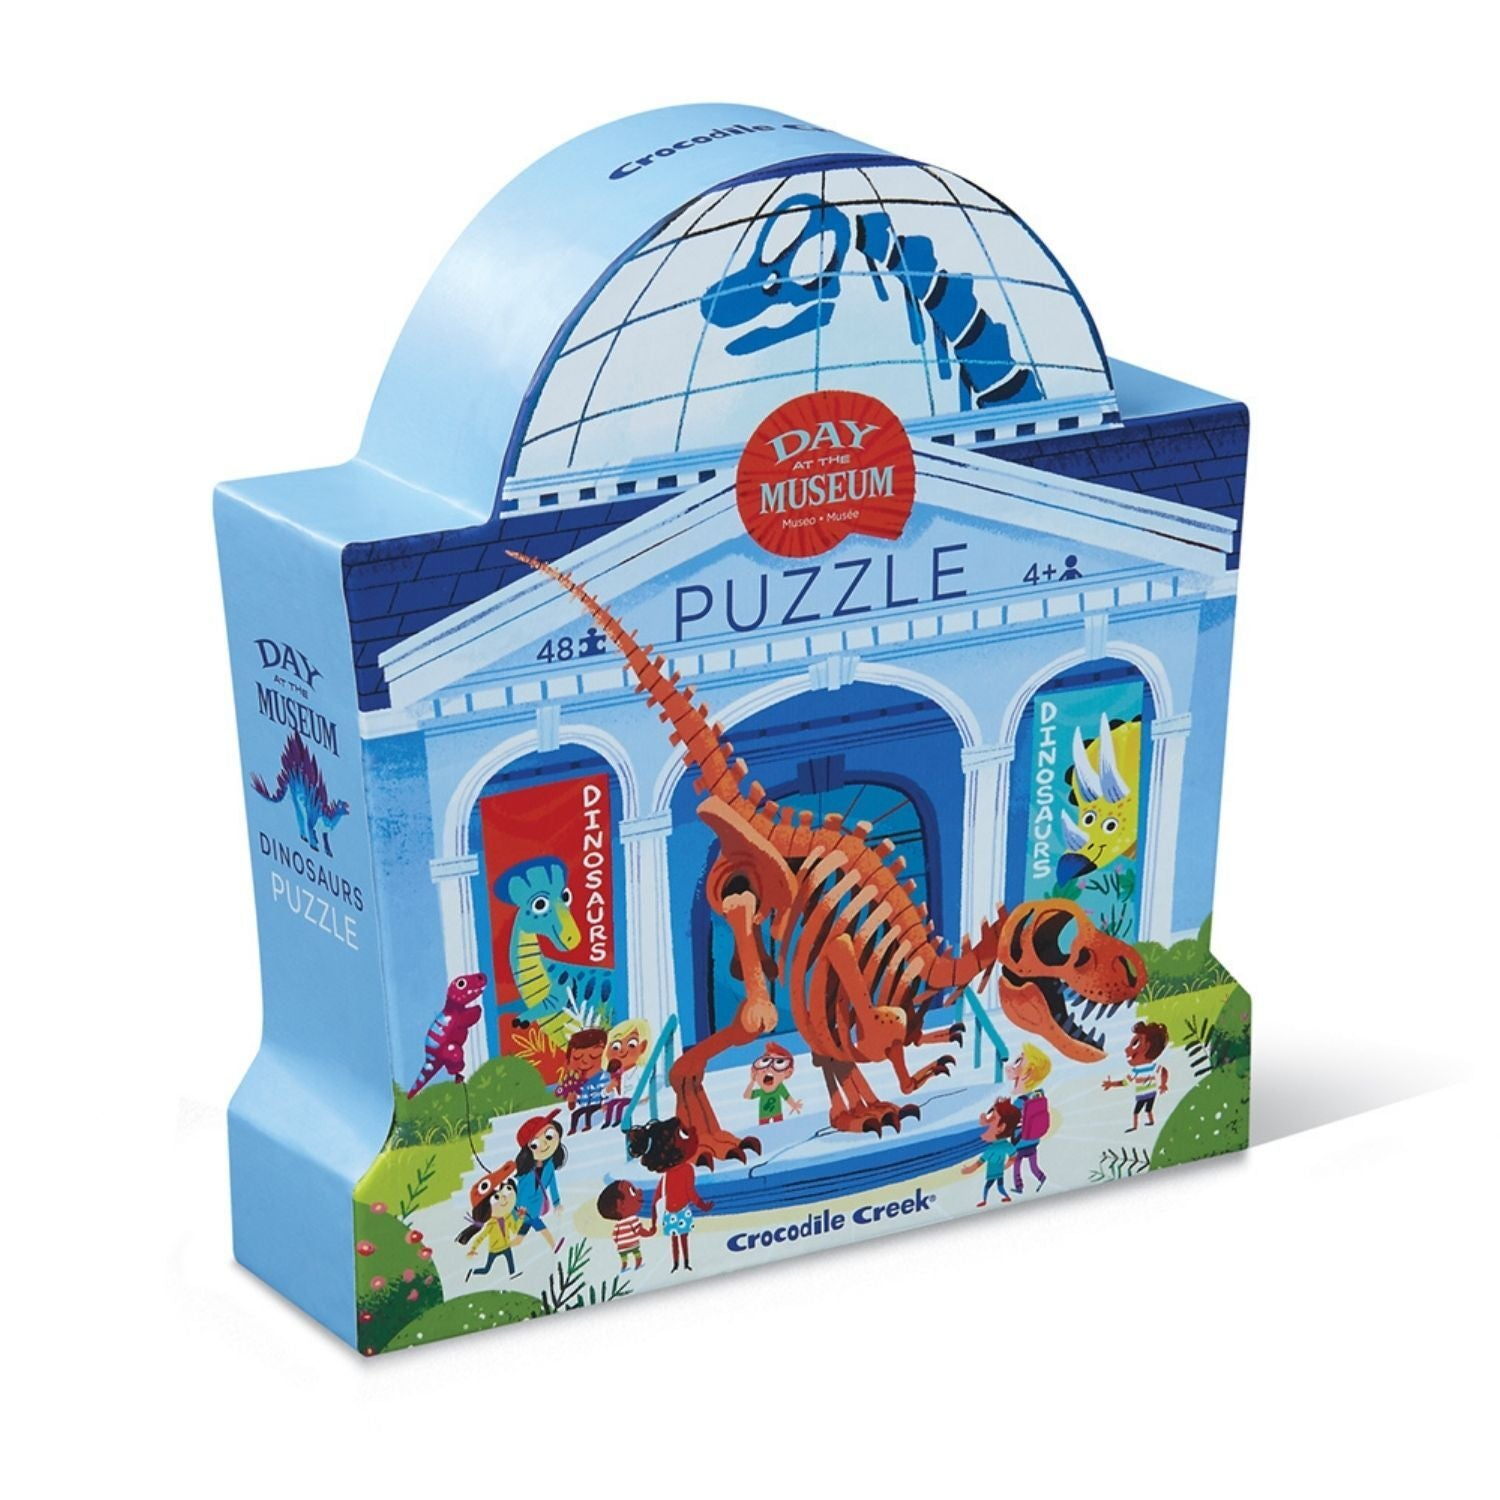 Day at the Museum Puzzle 48pc - Dinosaur